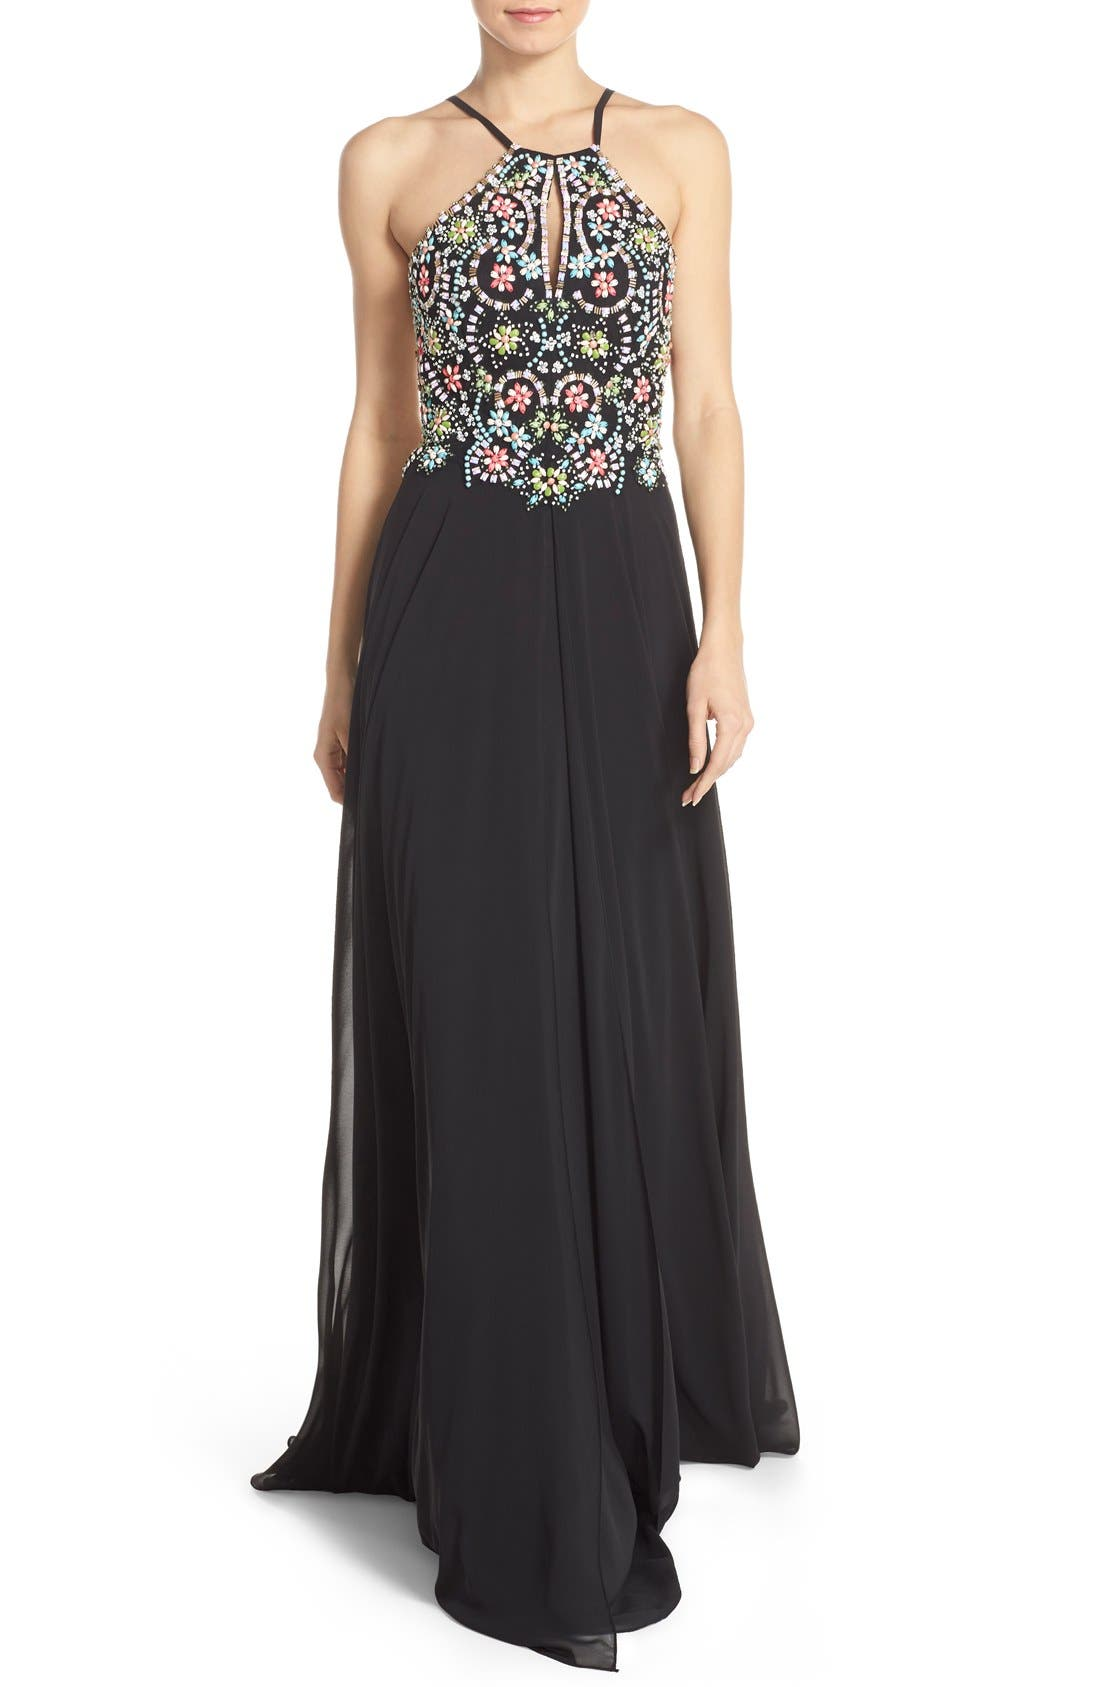 Main Image - Faviana Embellished Chiffon Fit & Flare Gown